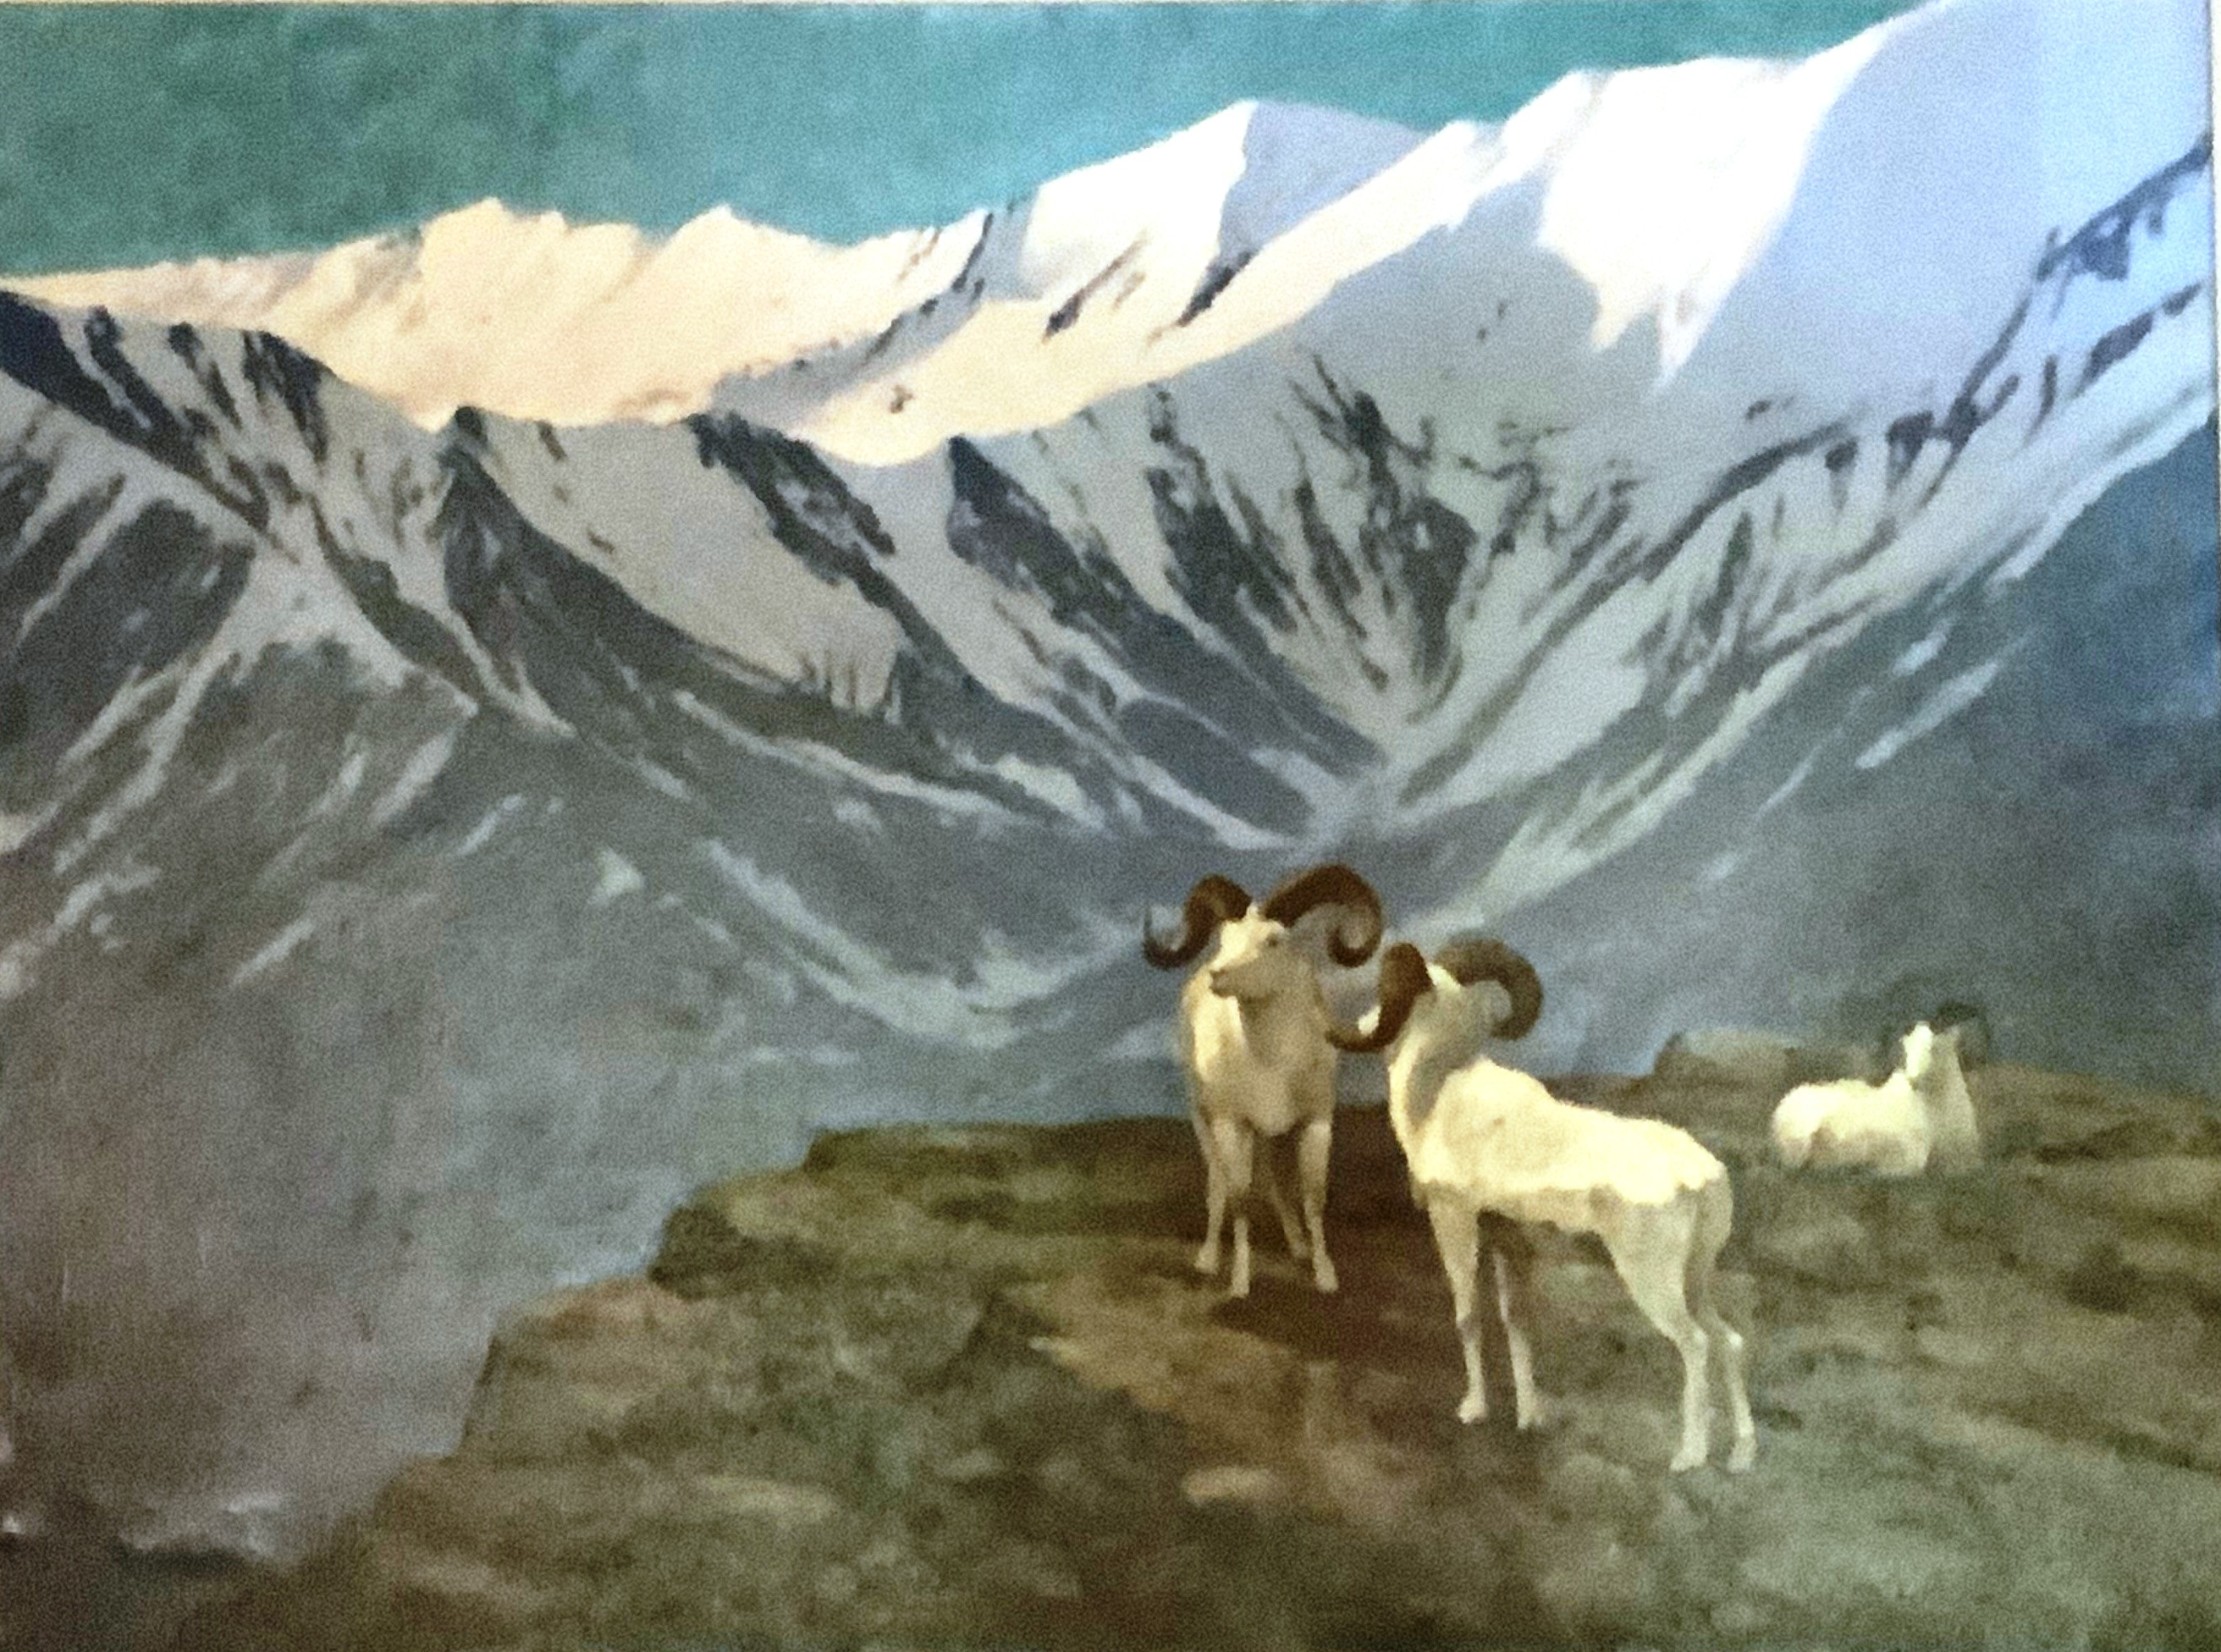 Mountain Goat artwork by William Schumpert - art listed for sale on Artplode